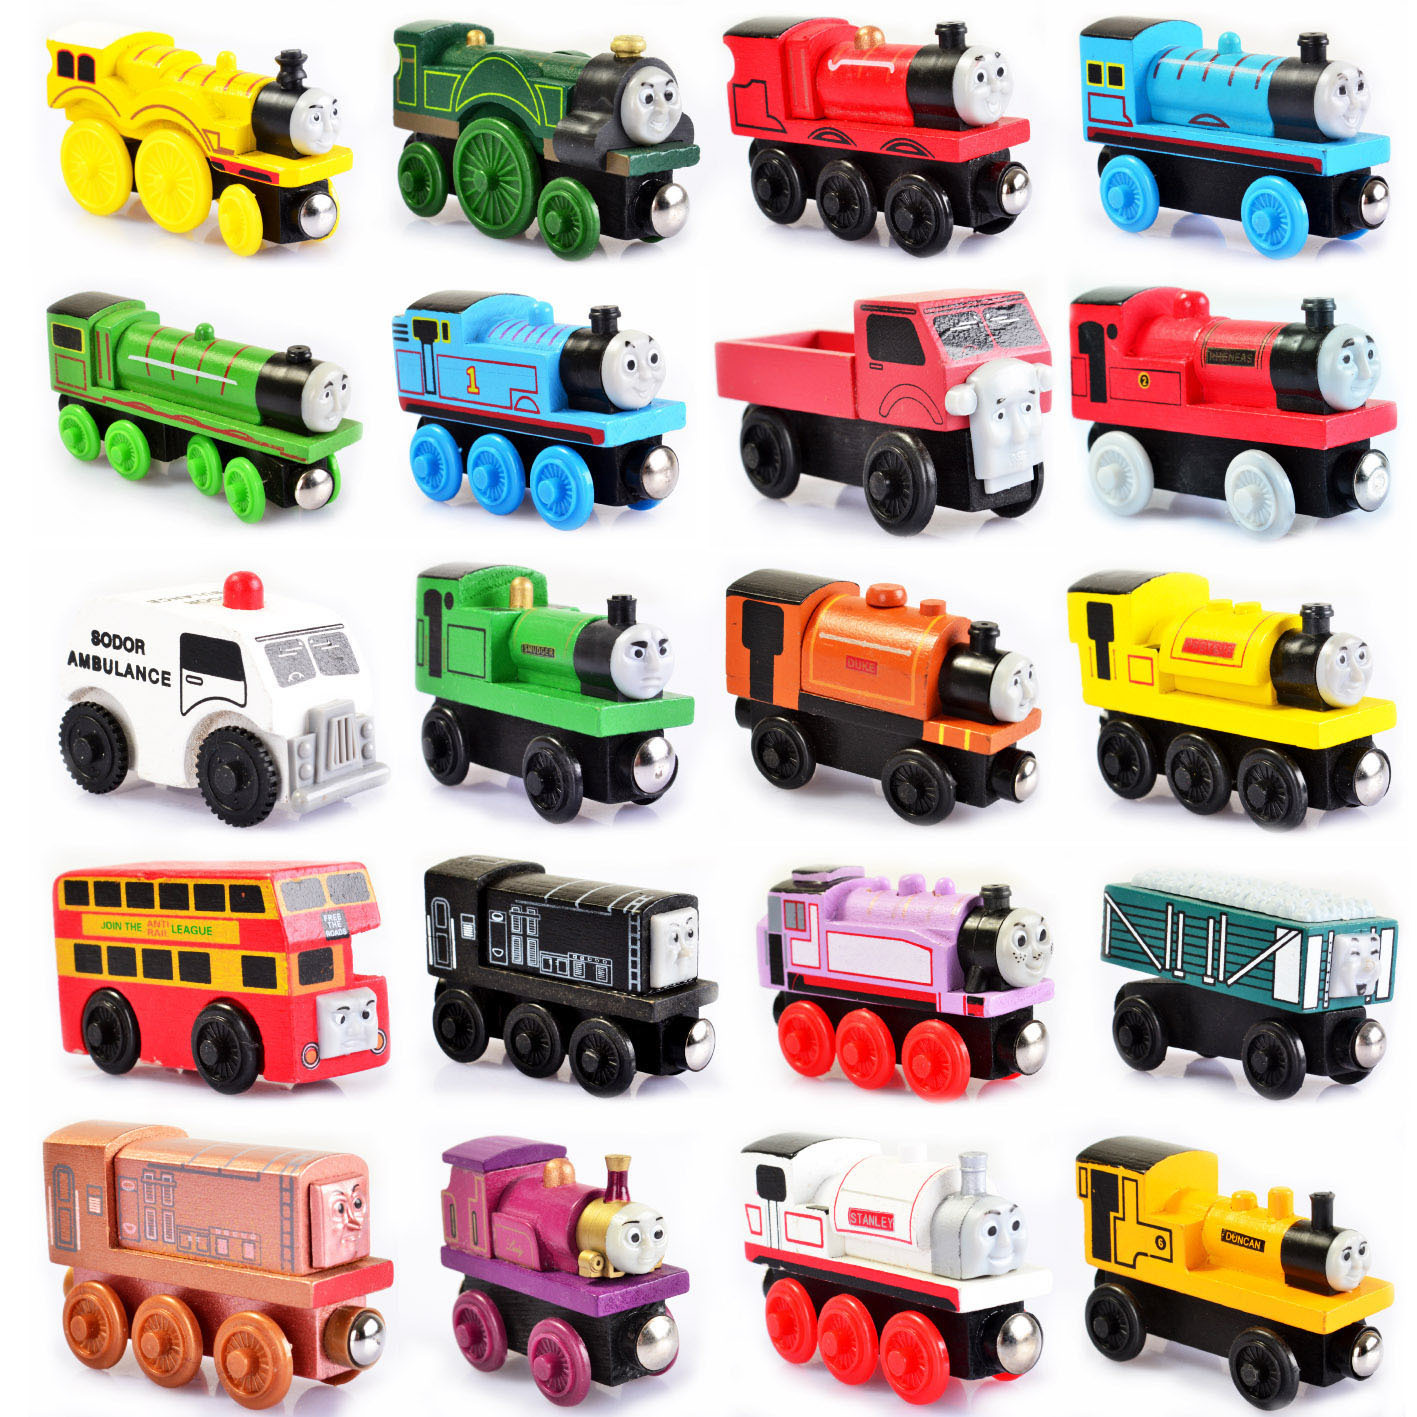 Thomas and friends anime wooden railway trains toy trains model great kids baby toys for children